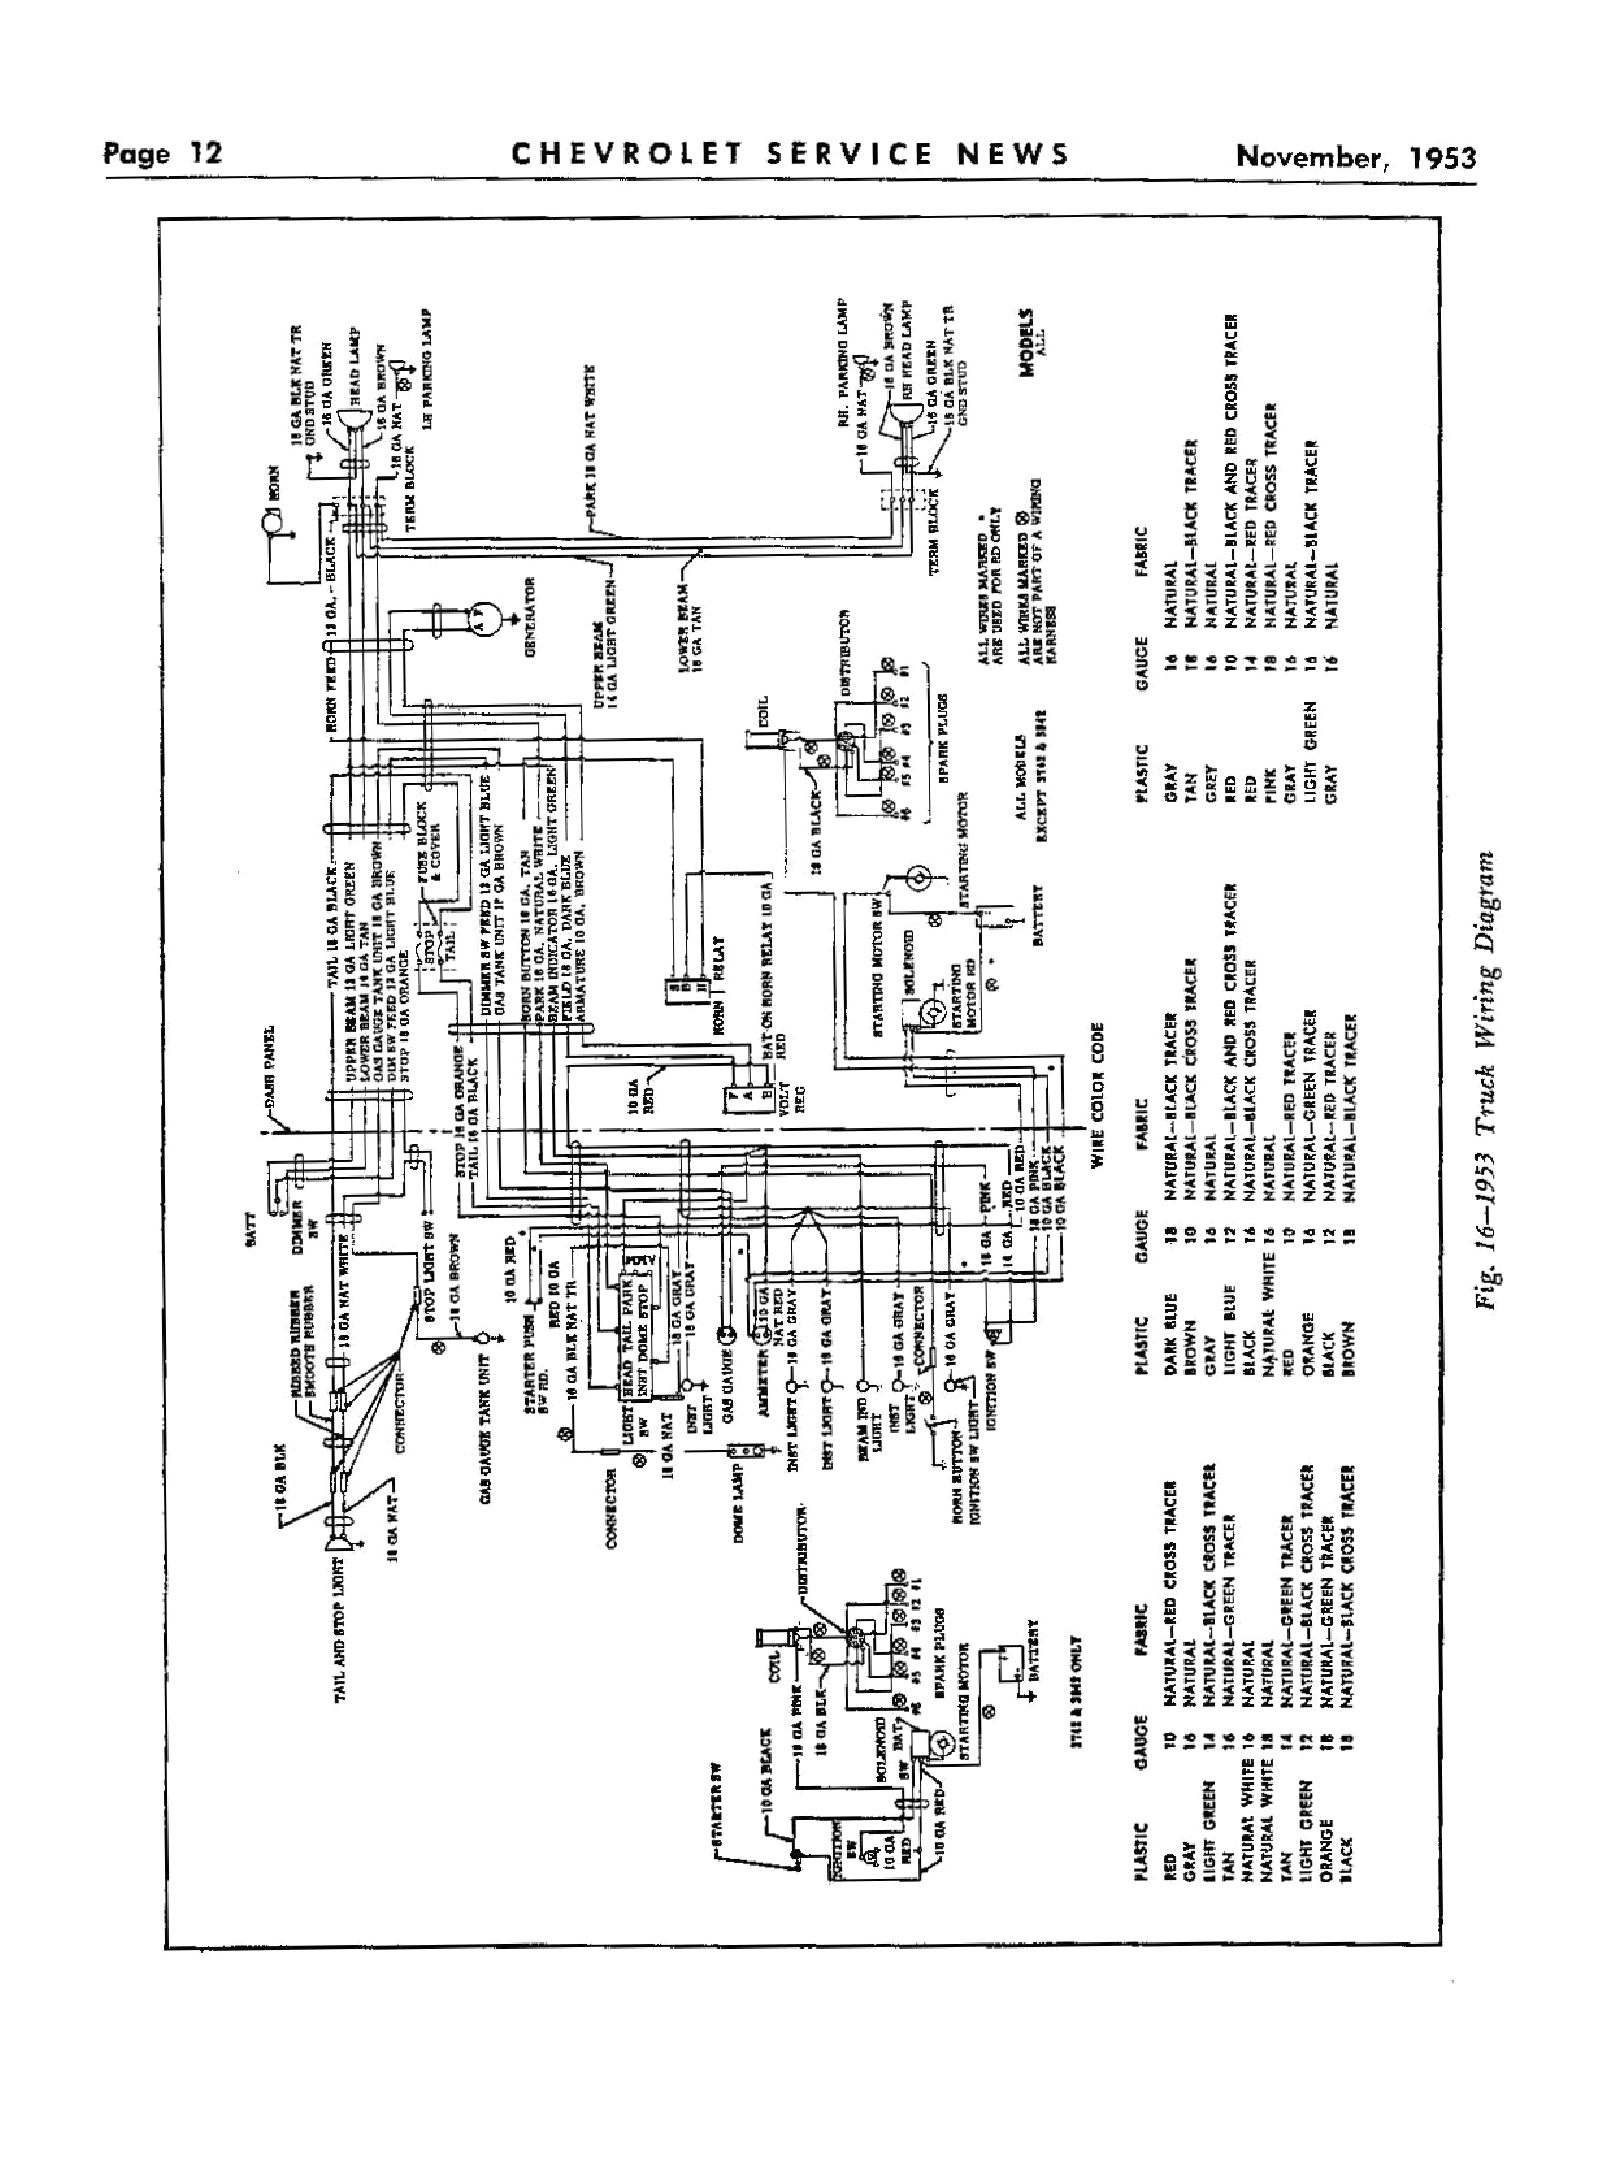 53csn1112 chevy wiring diagrams gmc truck wiring diagram at soozxer.org